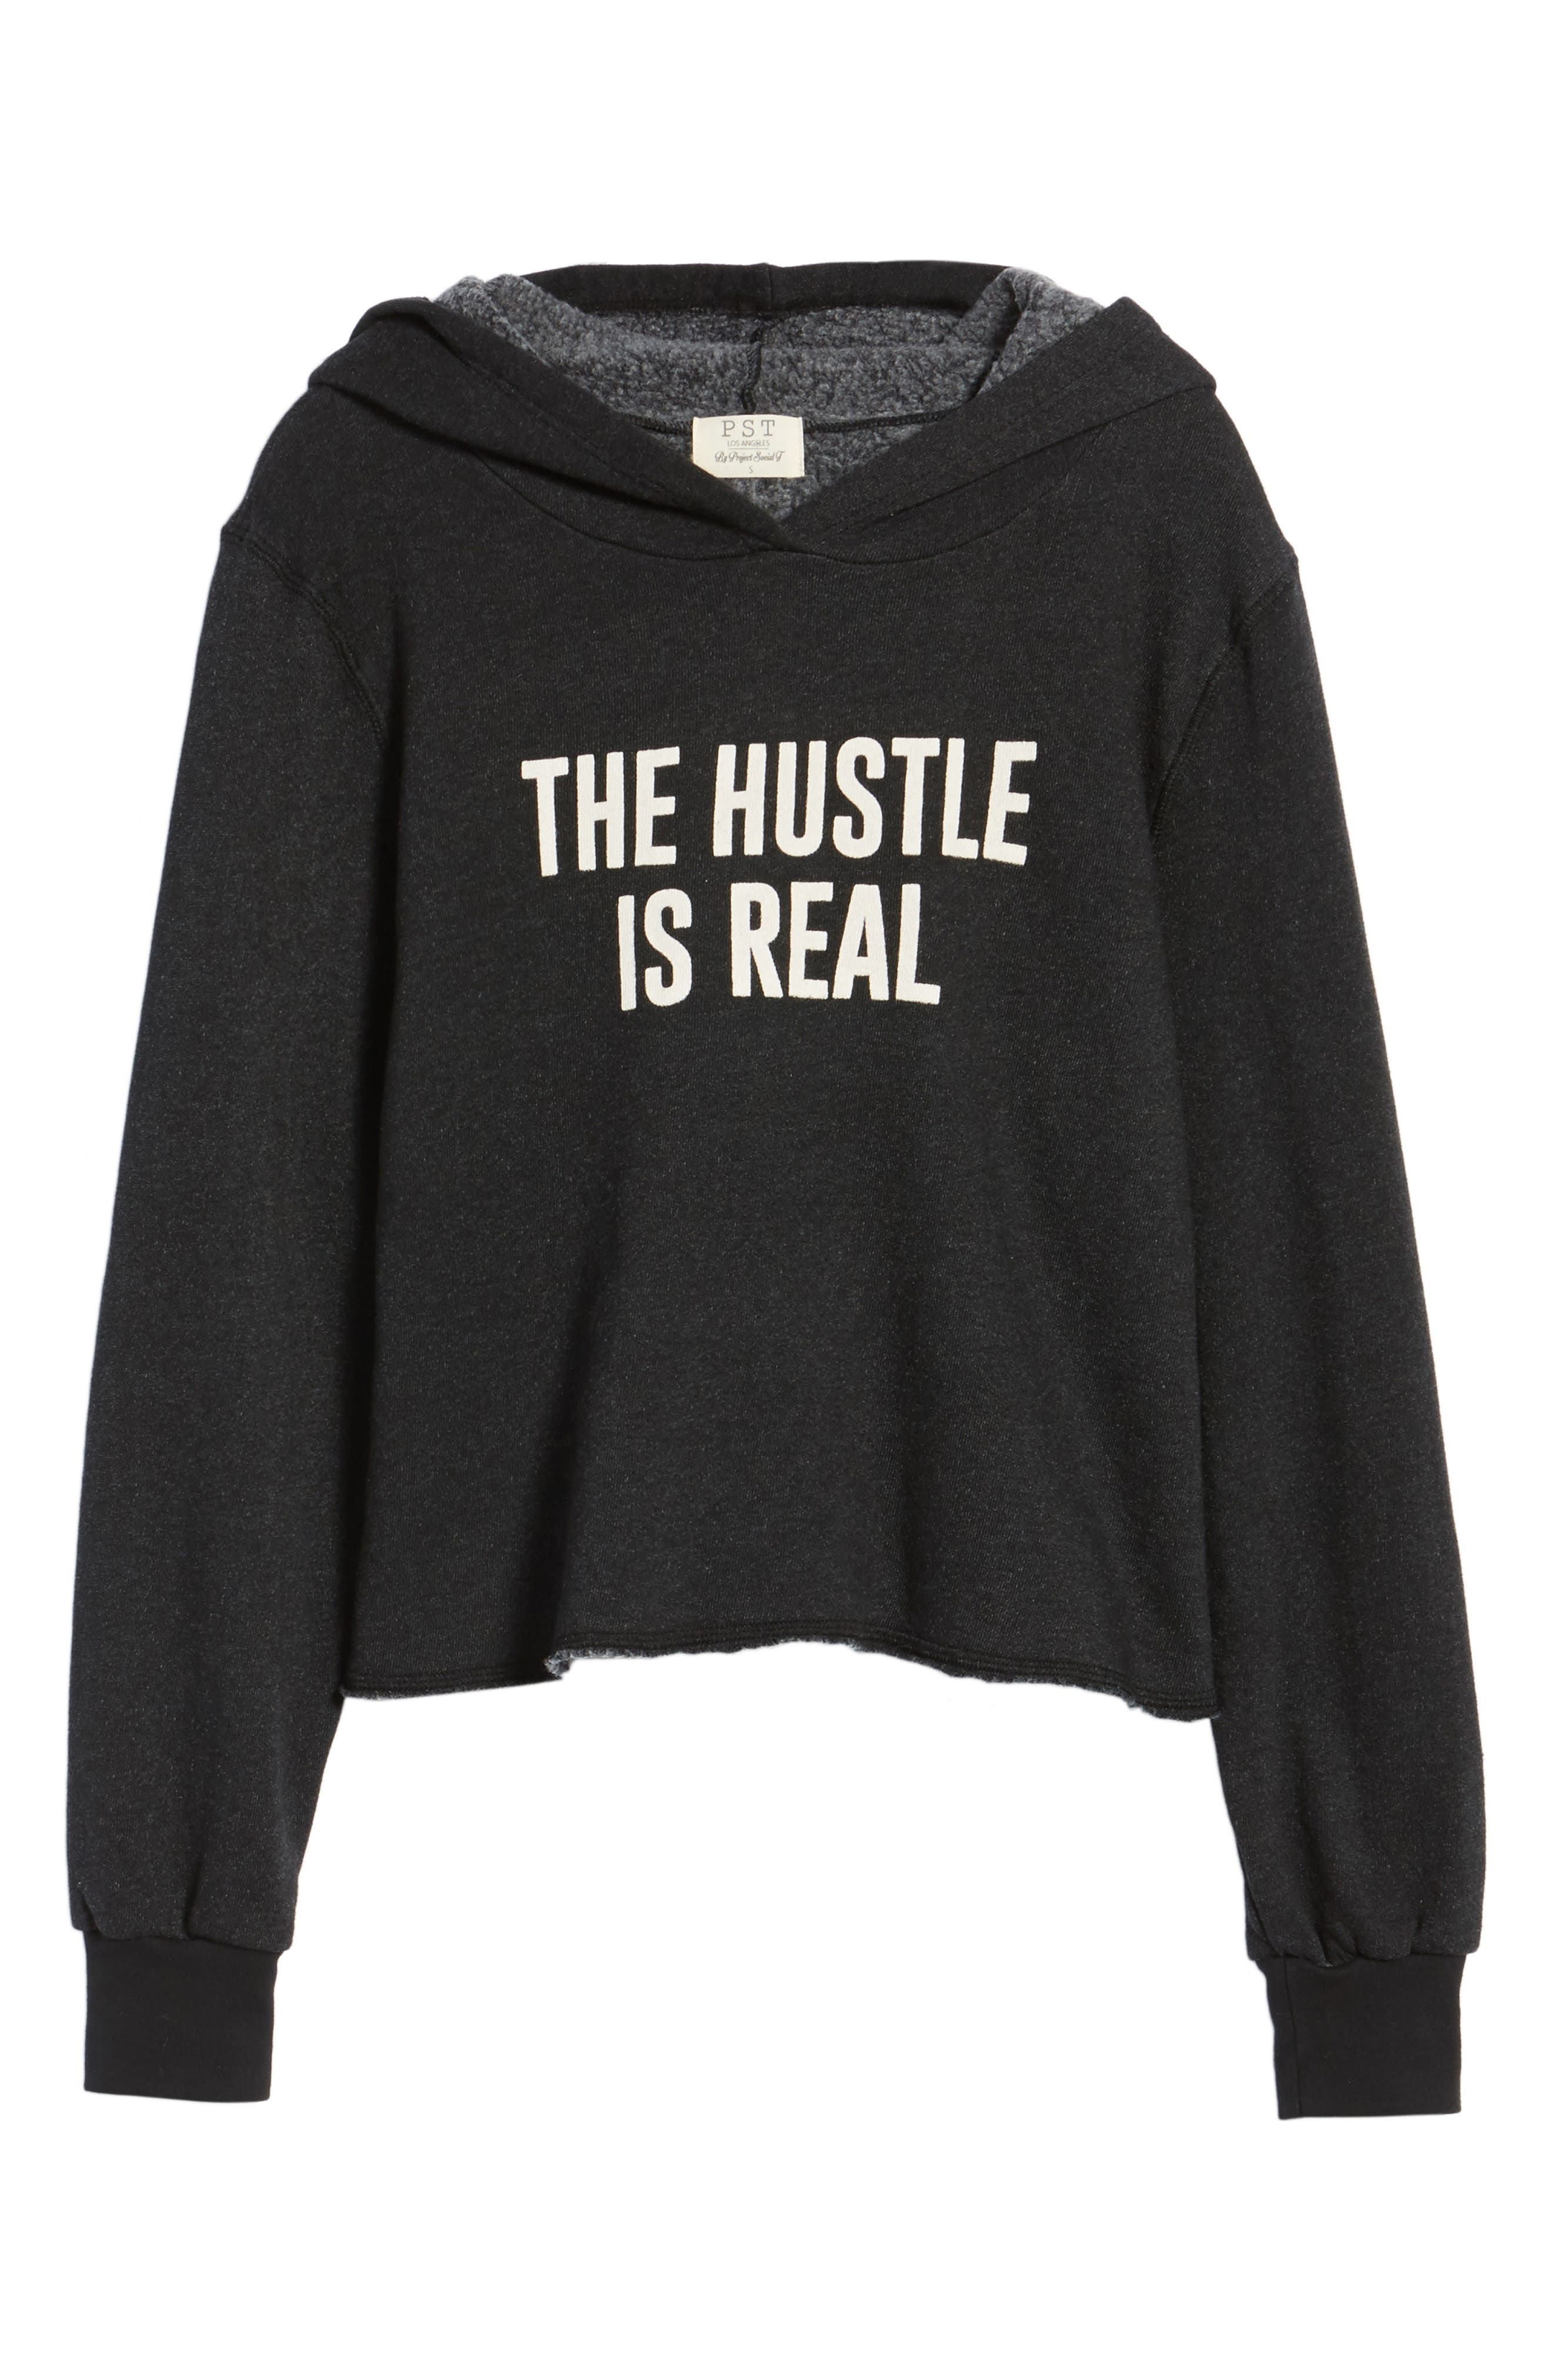 The Hustle is Real Hoodie,                             Alternate thumbnail 6, color,                             001